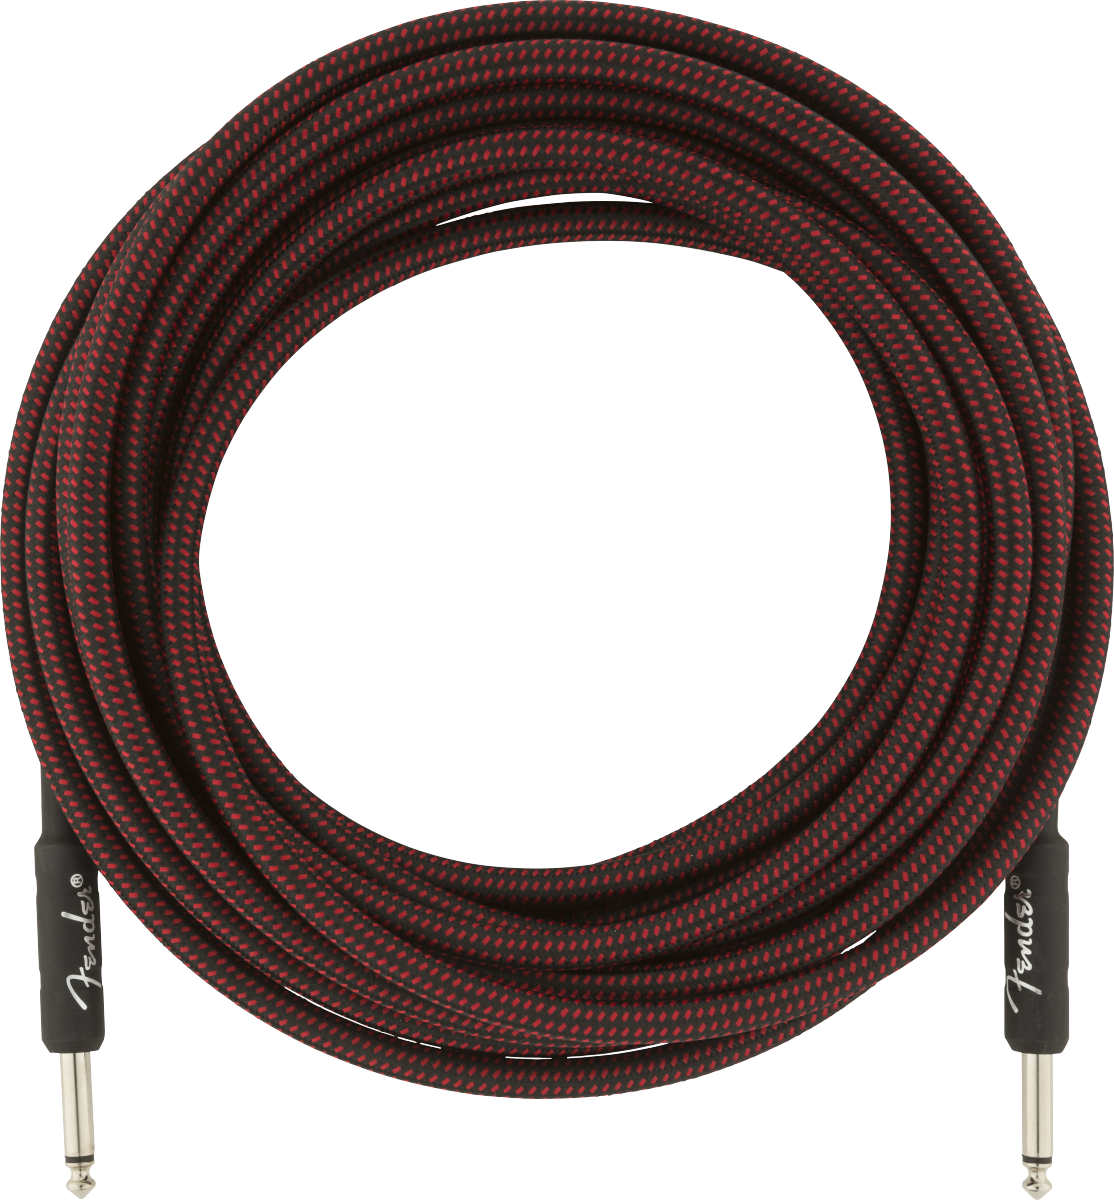 Fender Professional Series Instrument Cable, 25', Red Tweed